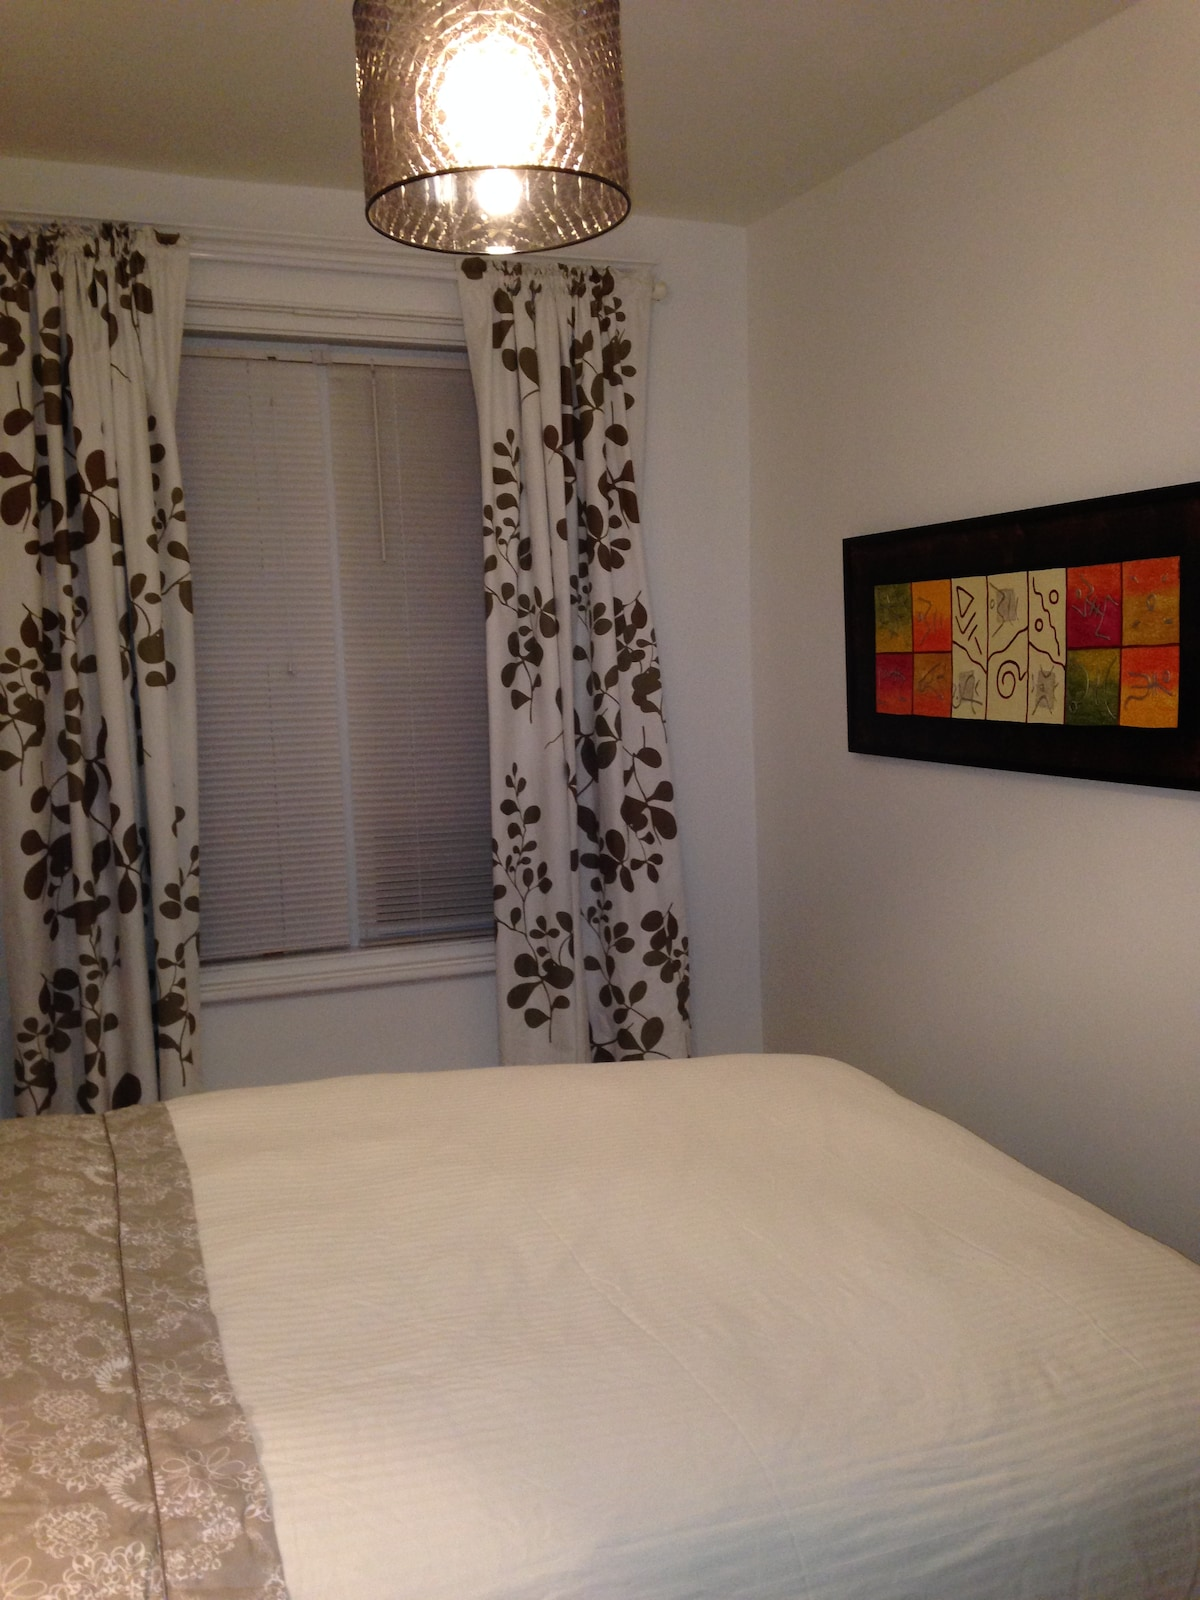 Very quiet residential area, bedroom 1